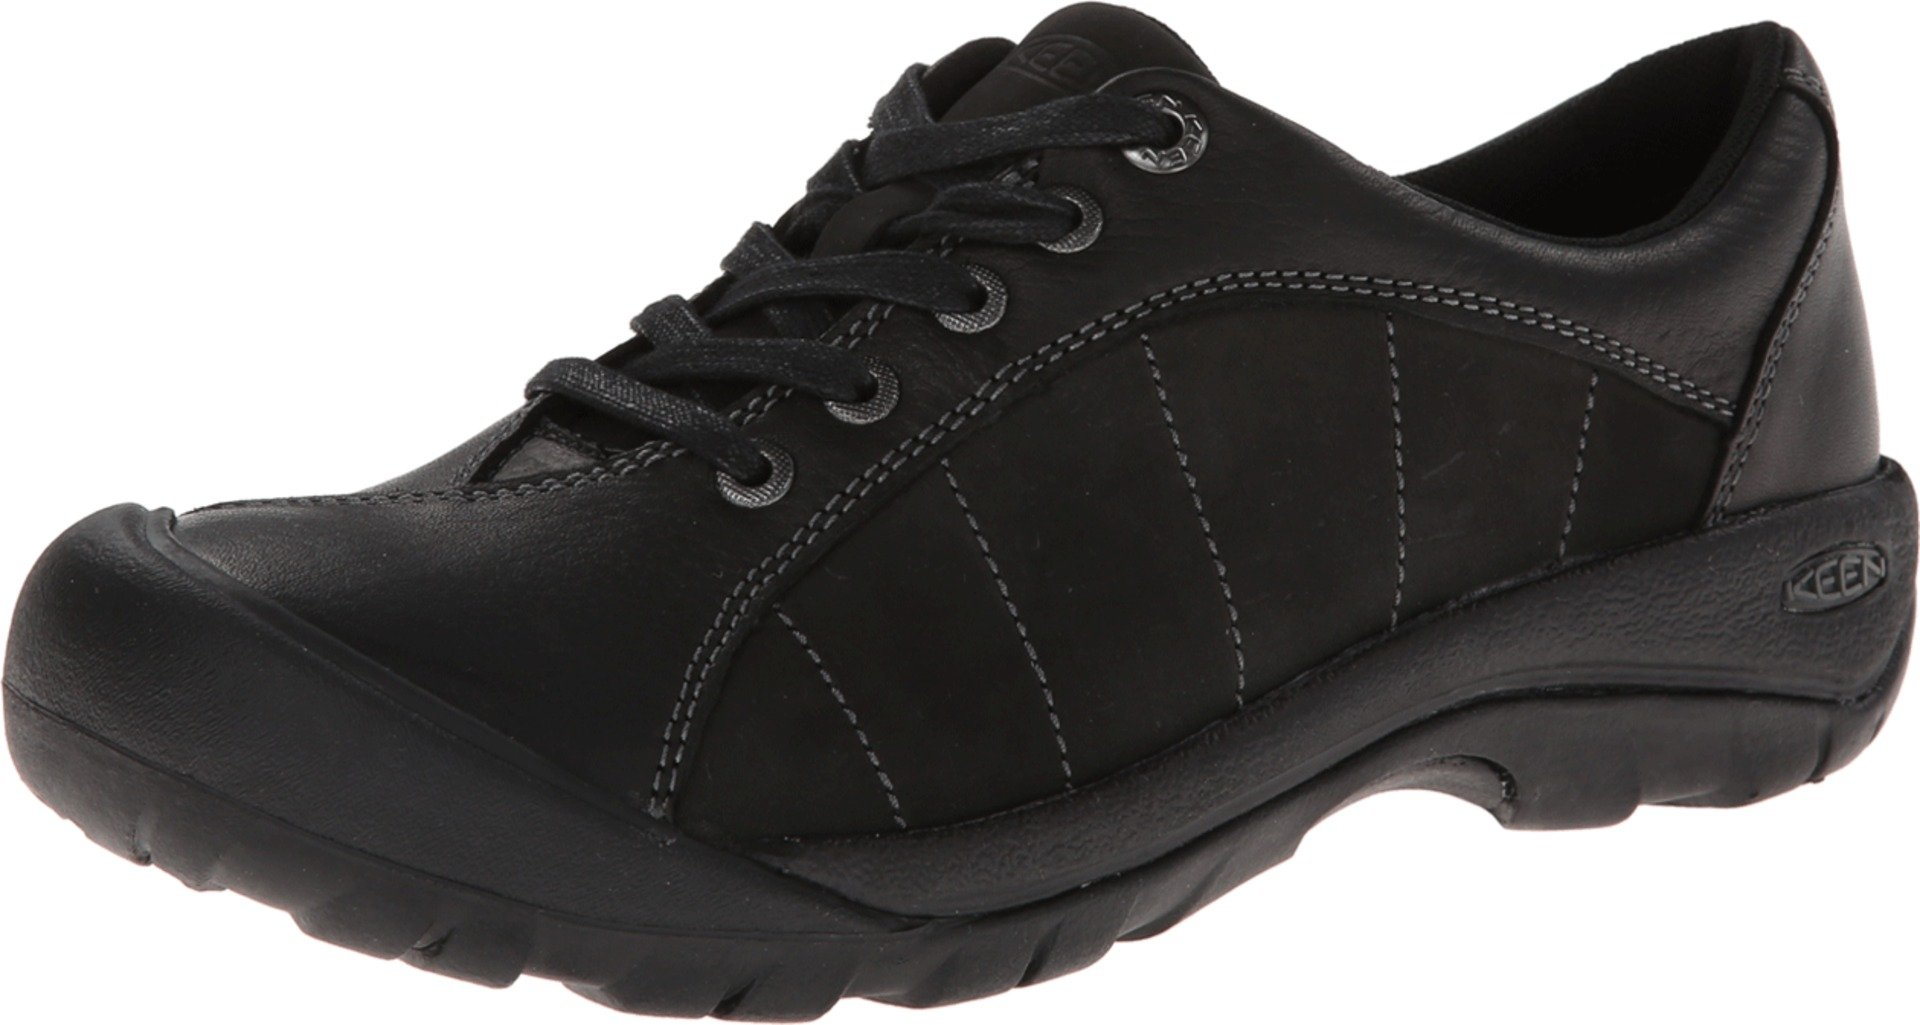 KEEN Women's Presidio Oxford,Black/Magnet,8 M US